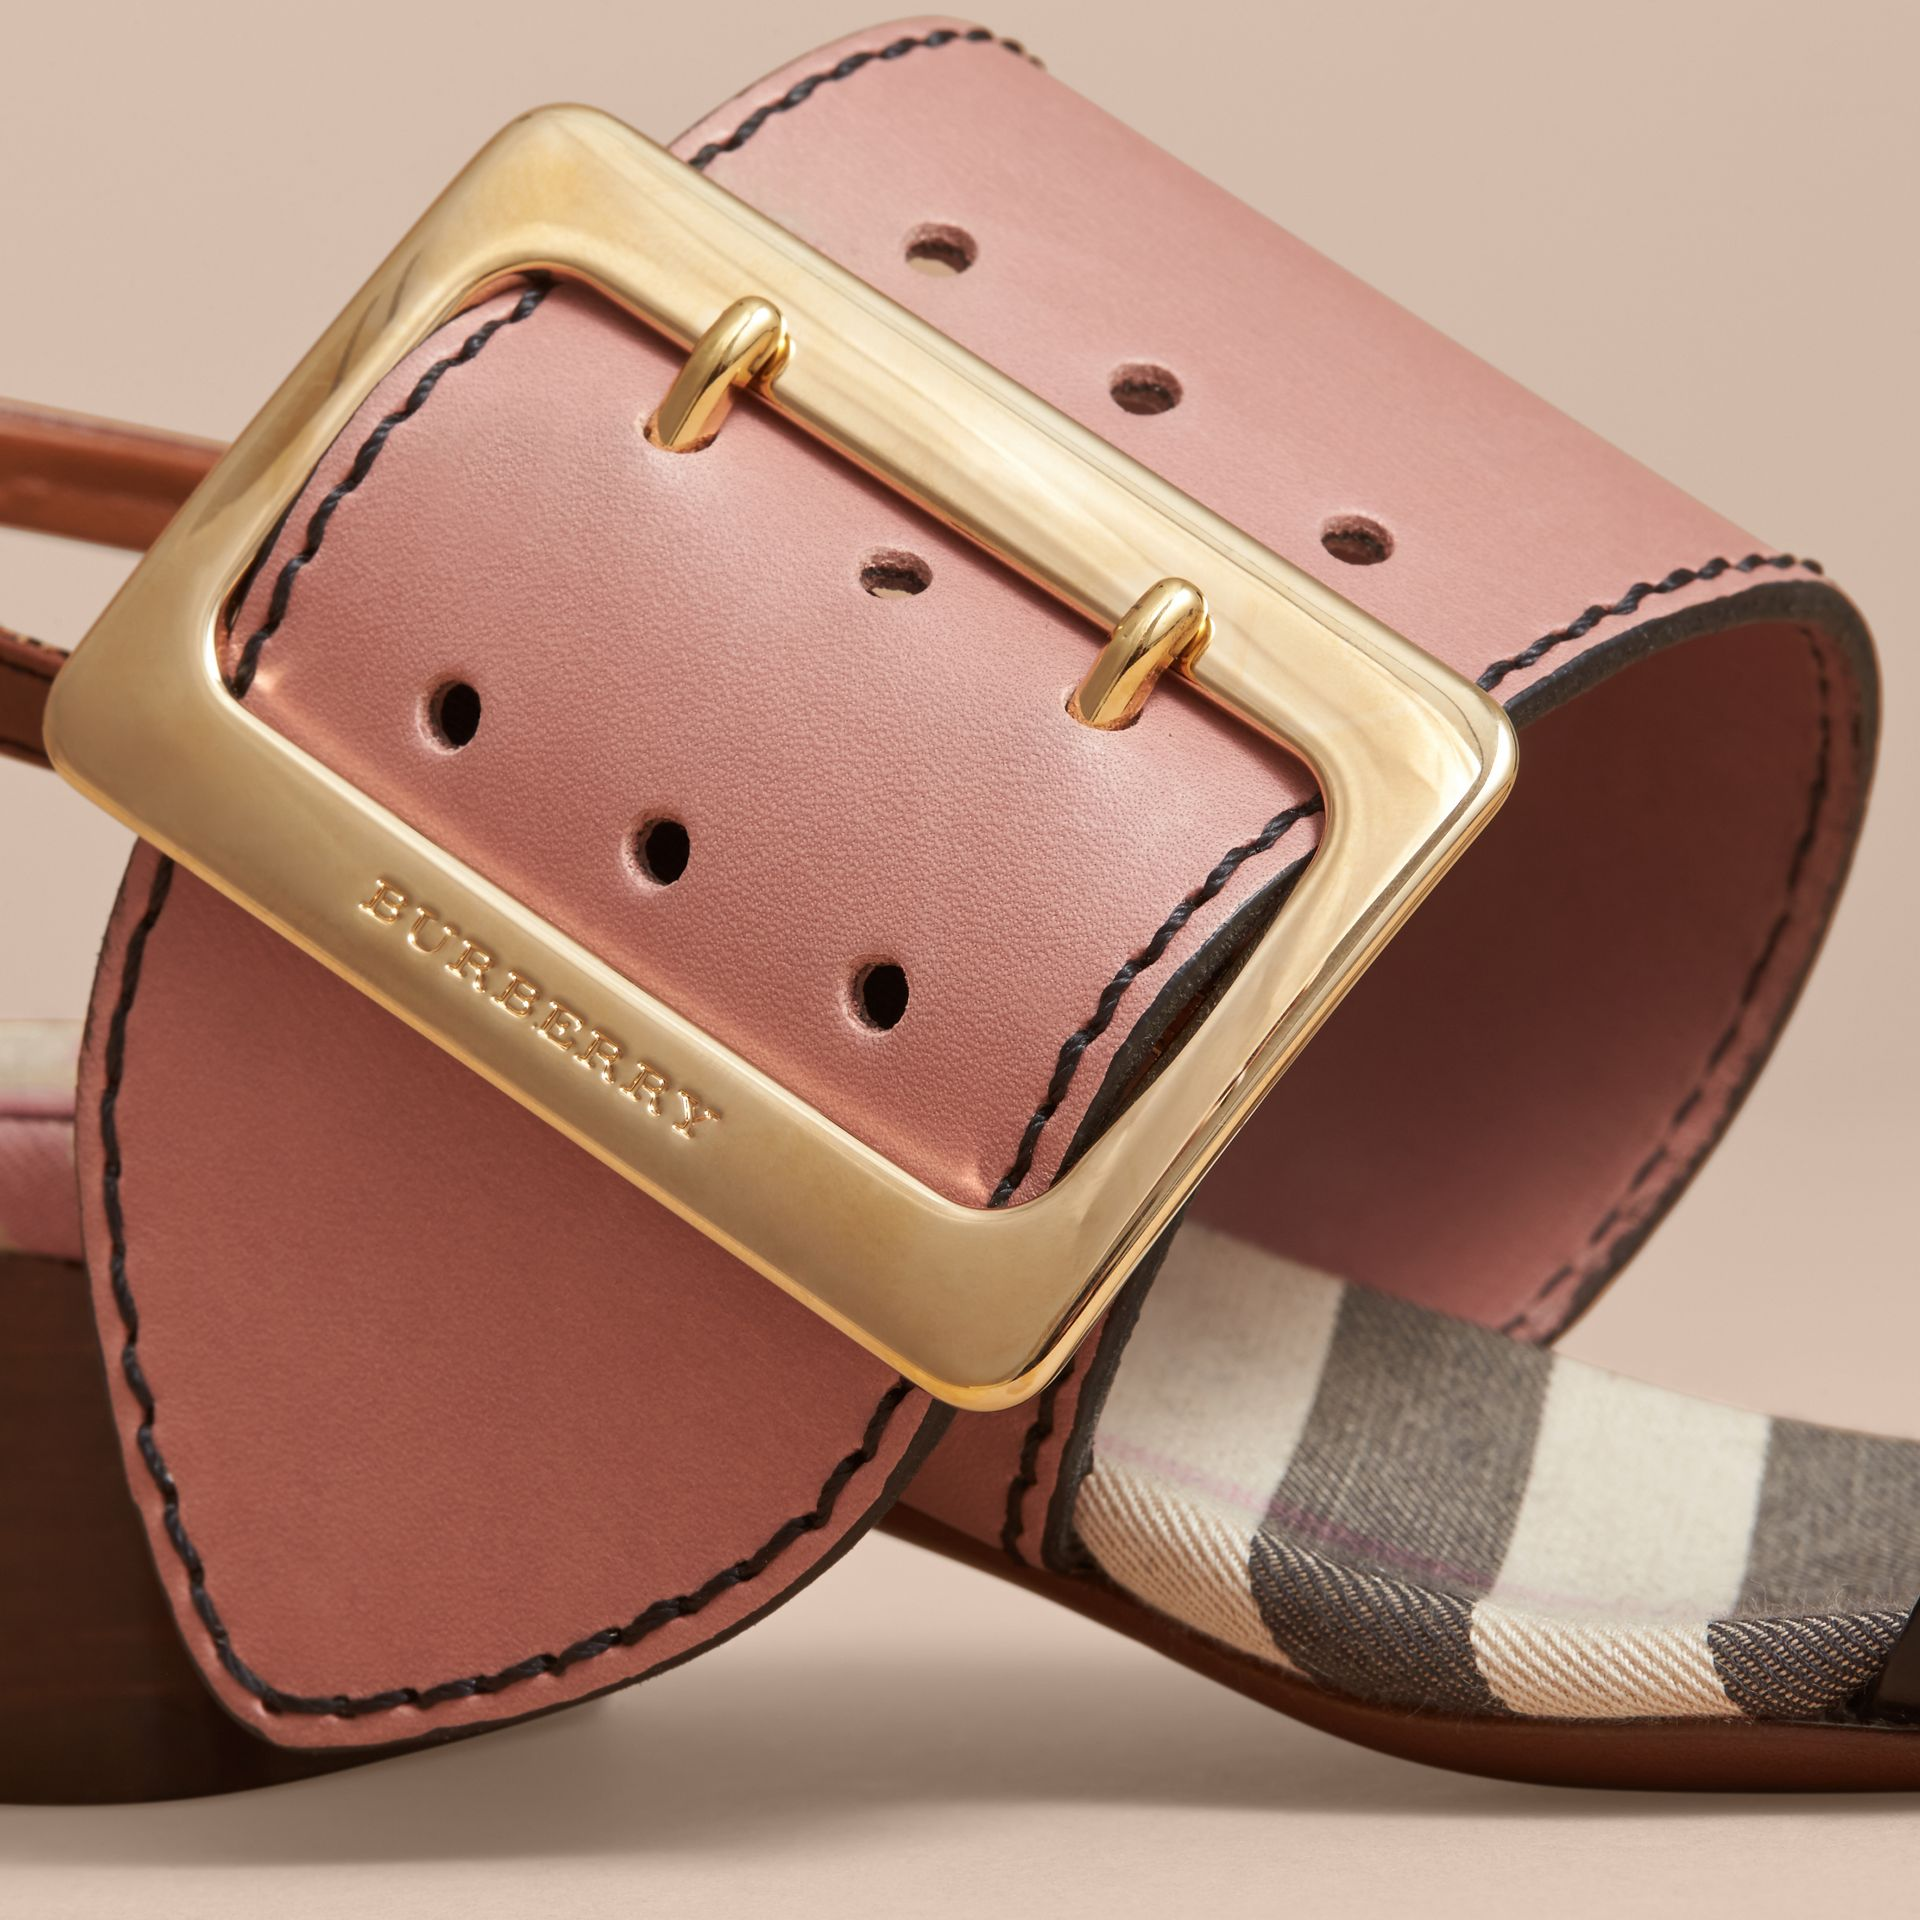 Ledersandalen mit Colour-Blocking-Design und Schnallendetail - Damen | Burberry - Galerie-Bild 2